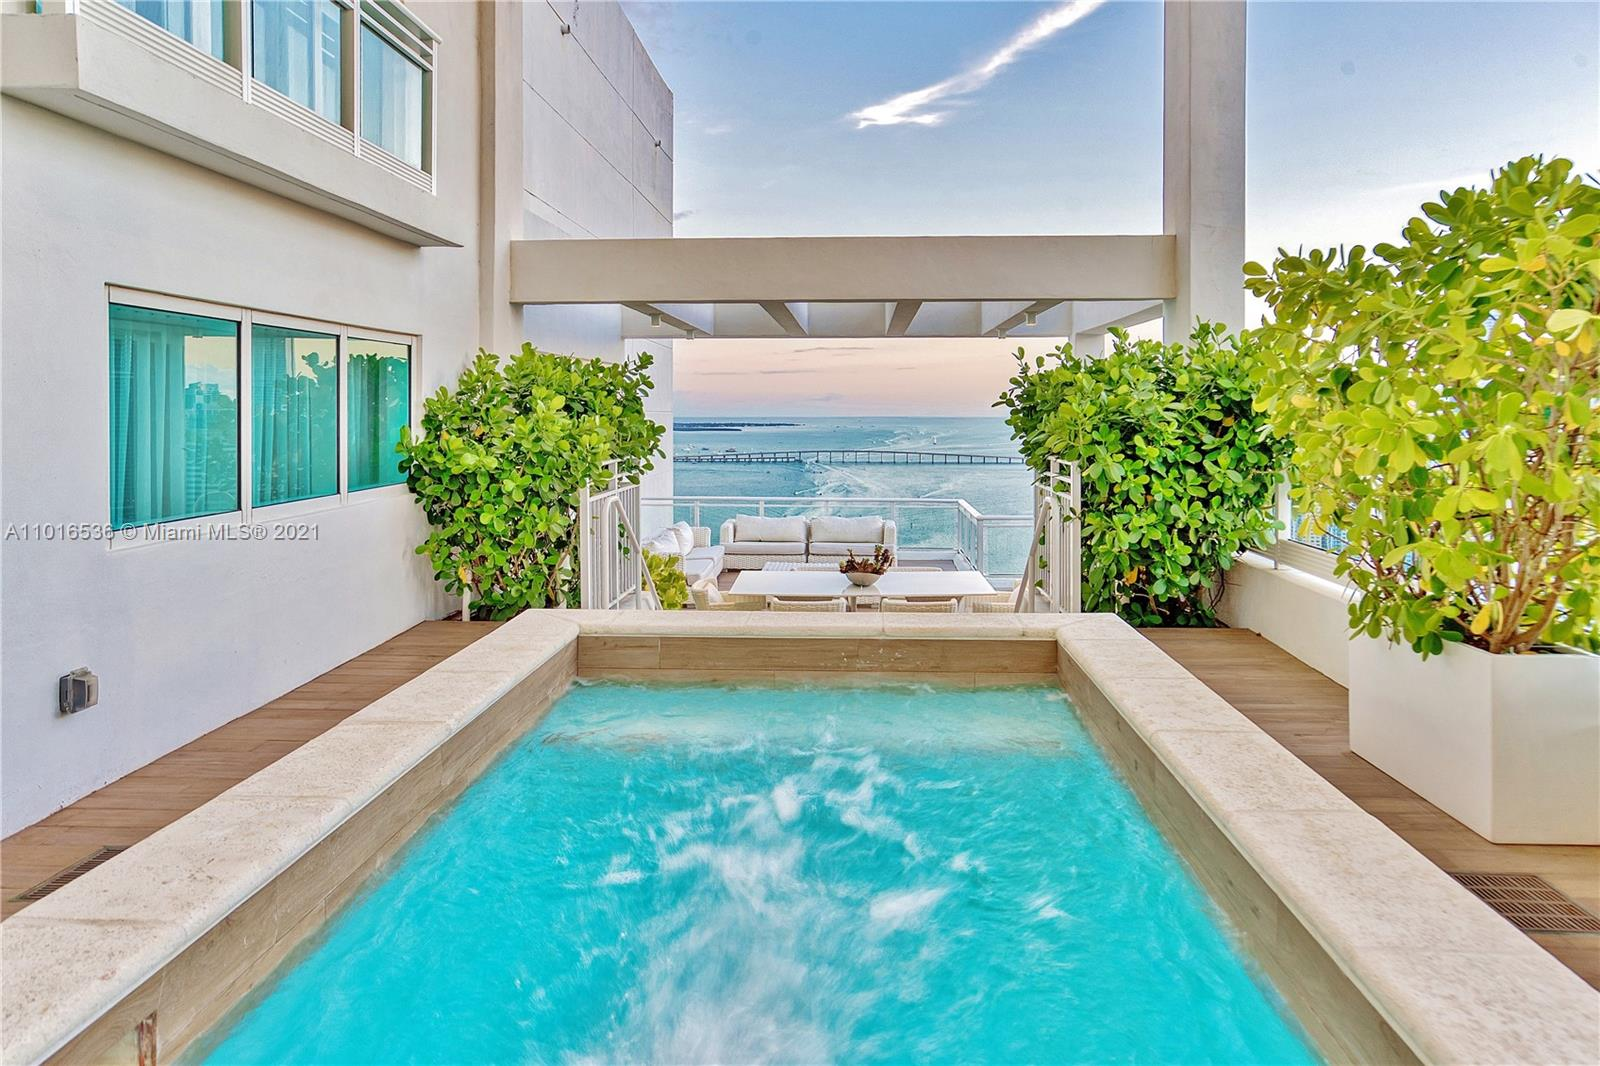 PENTHOUSE FOUR (Top 3 Floors) at Asia on Brickell Key w/ $450K of designer furnishings from Artefacto. Your Tri-level Dream PENTHOUSE at Asia, the Island's Premier Luxury Building, has over 7,300 SQFT of (interior 5,359 / exterior 1,946) living space w/ soaring high ceilings, a Gourmet Kitchen, European Oak Wood Floors, a Secluded Top Floor Master Suite, 4 Premium Parking Spaces, a Private Fingerprint Elevator to the unit & an Interior Elevator. Your HOME IN THE SKY has 270 degree breathtaking Bay, Brickell, DWTN & the Ocean views from Seven Terraces, one which features a Private Rooftop Pool & Wet Bar. Live on an exclusive Island Oasis w/ parks, the 5 Star Mandarin Oriental, Restaurants, & steps away from Miami's Brickell/Downtown Financial & Entertainment District.